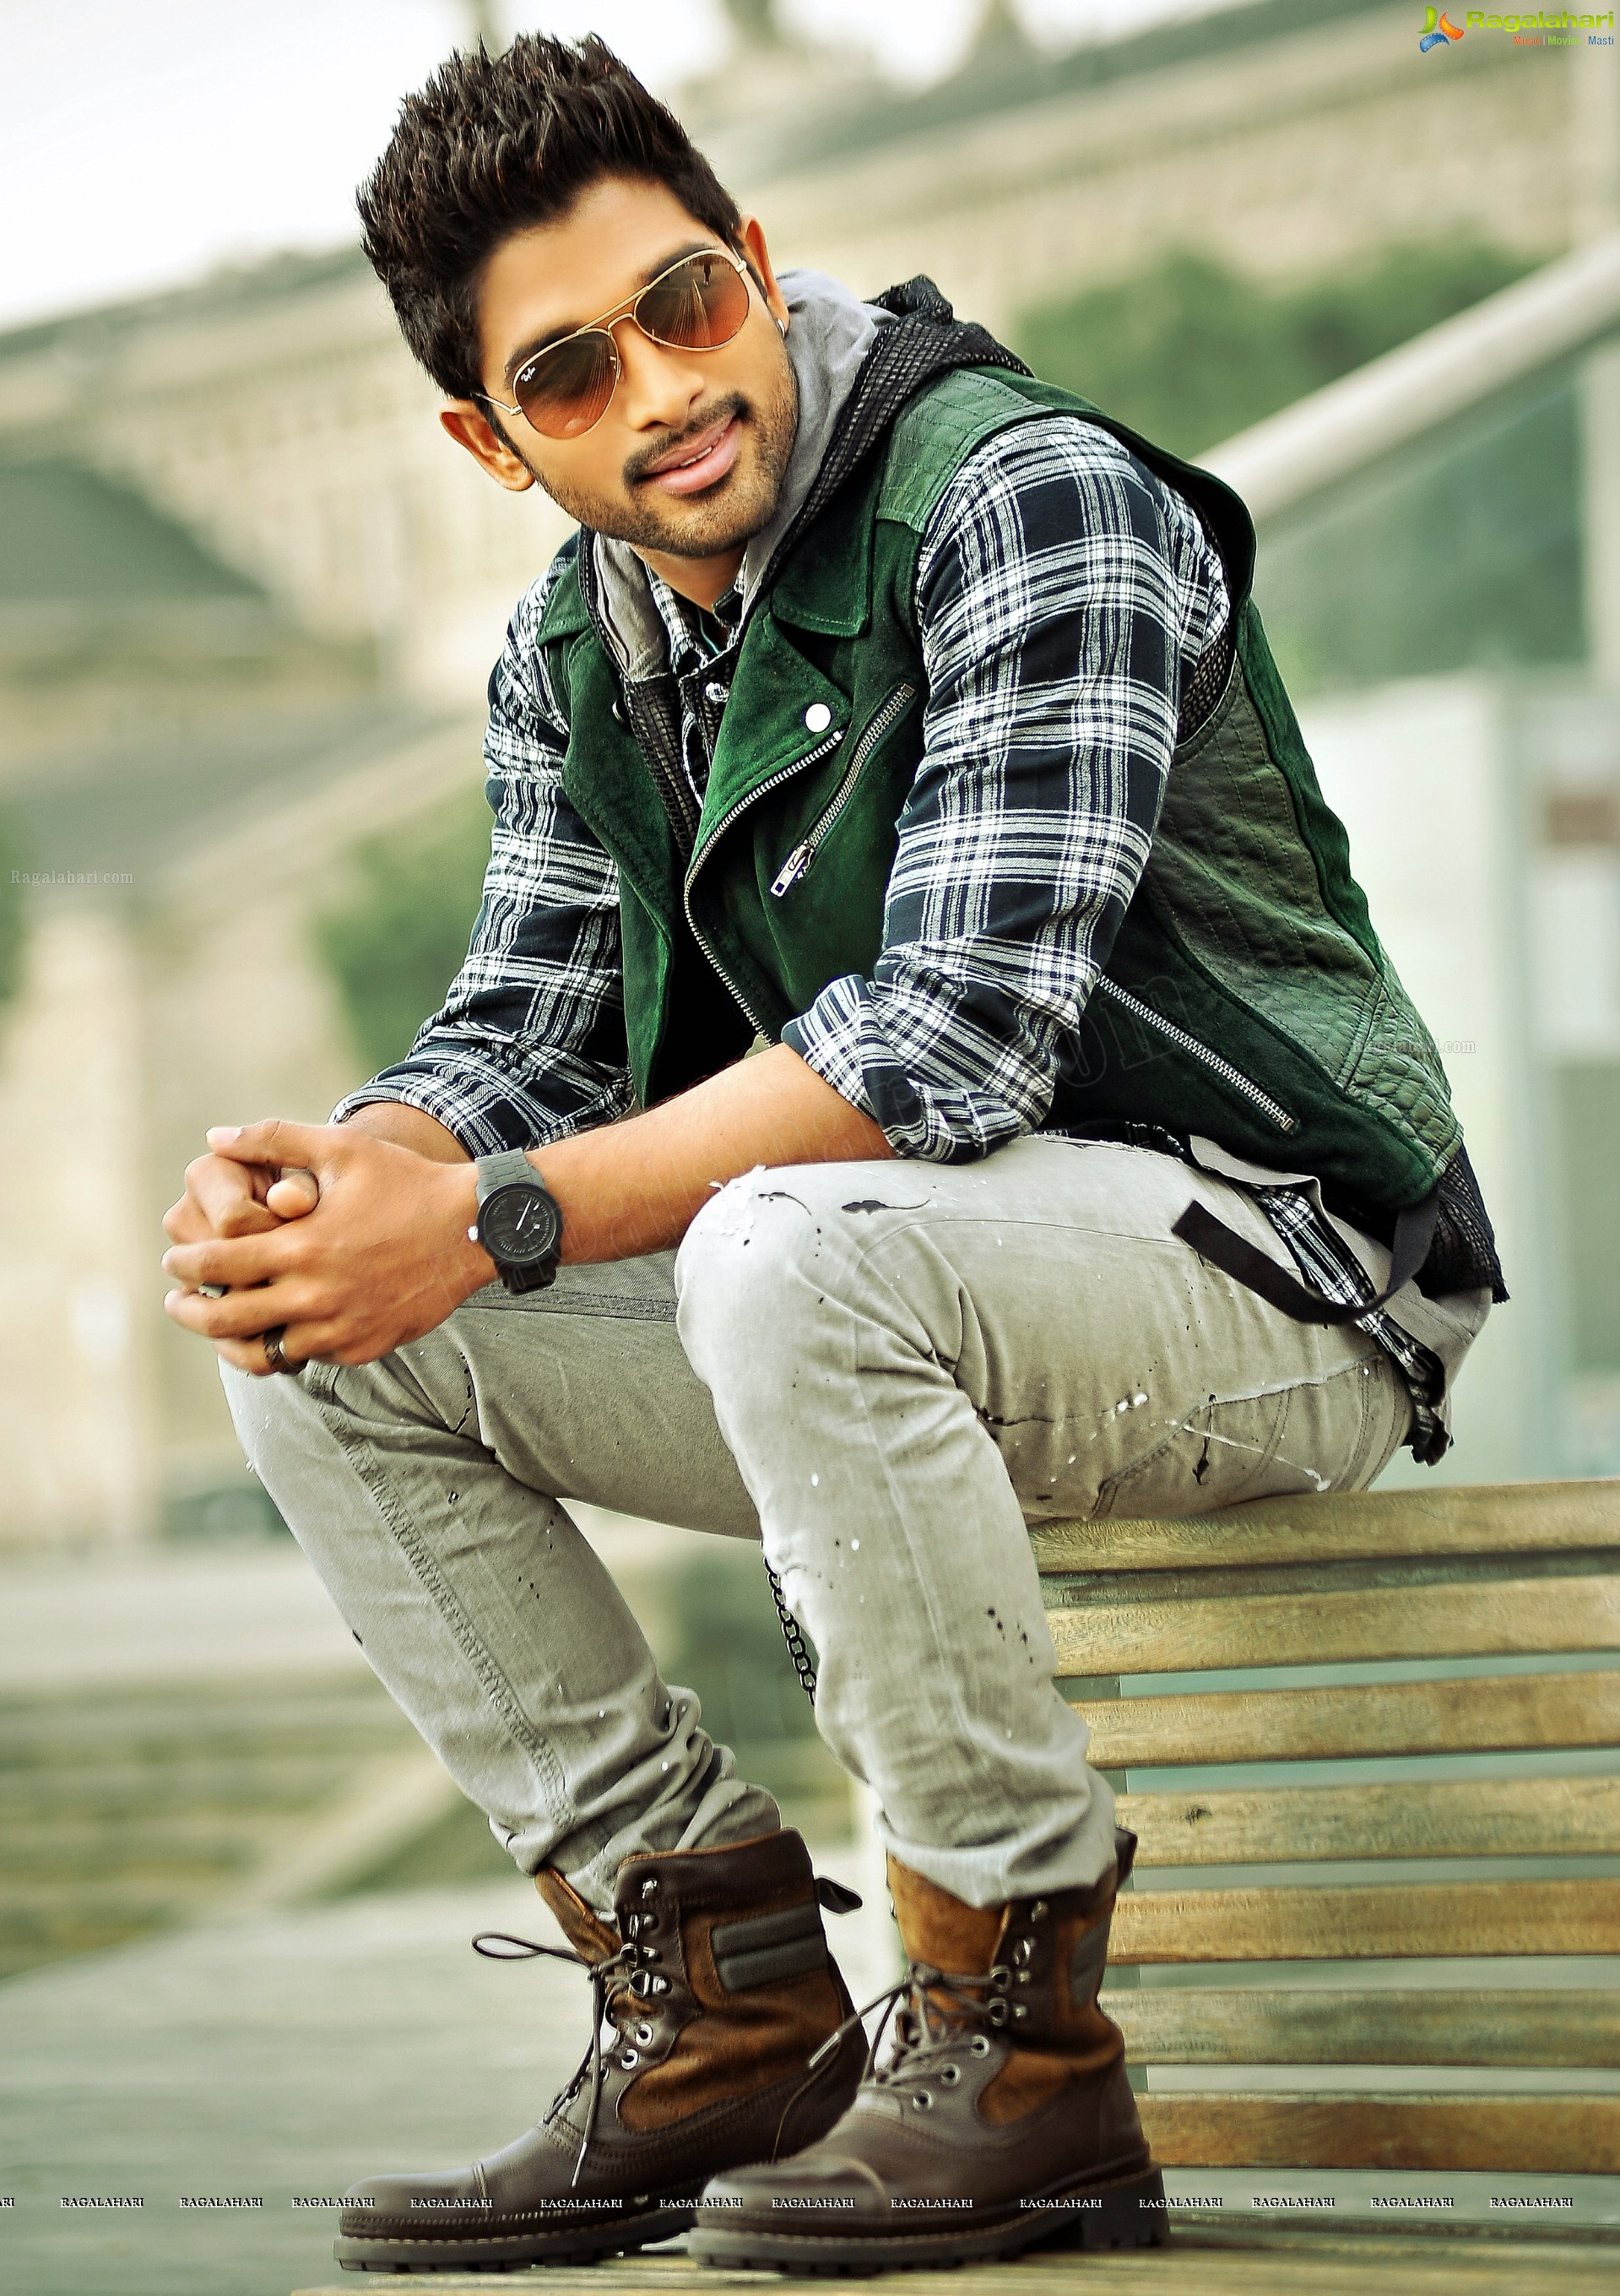 allu arjun hd image 6 tollywood actress images images photos